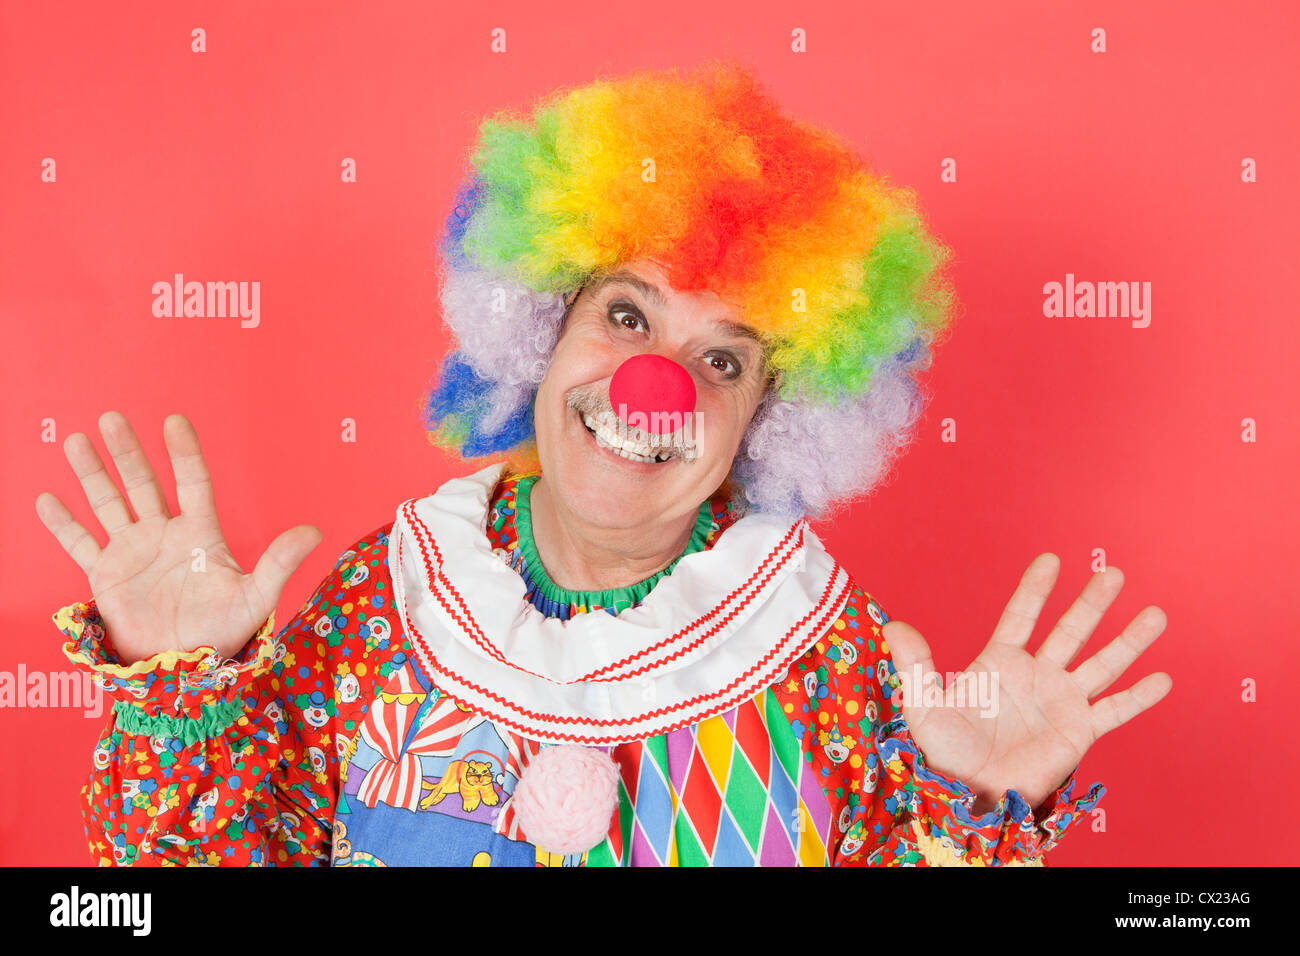 Portrait of funny clown with arms raised against colored background - Stock Image